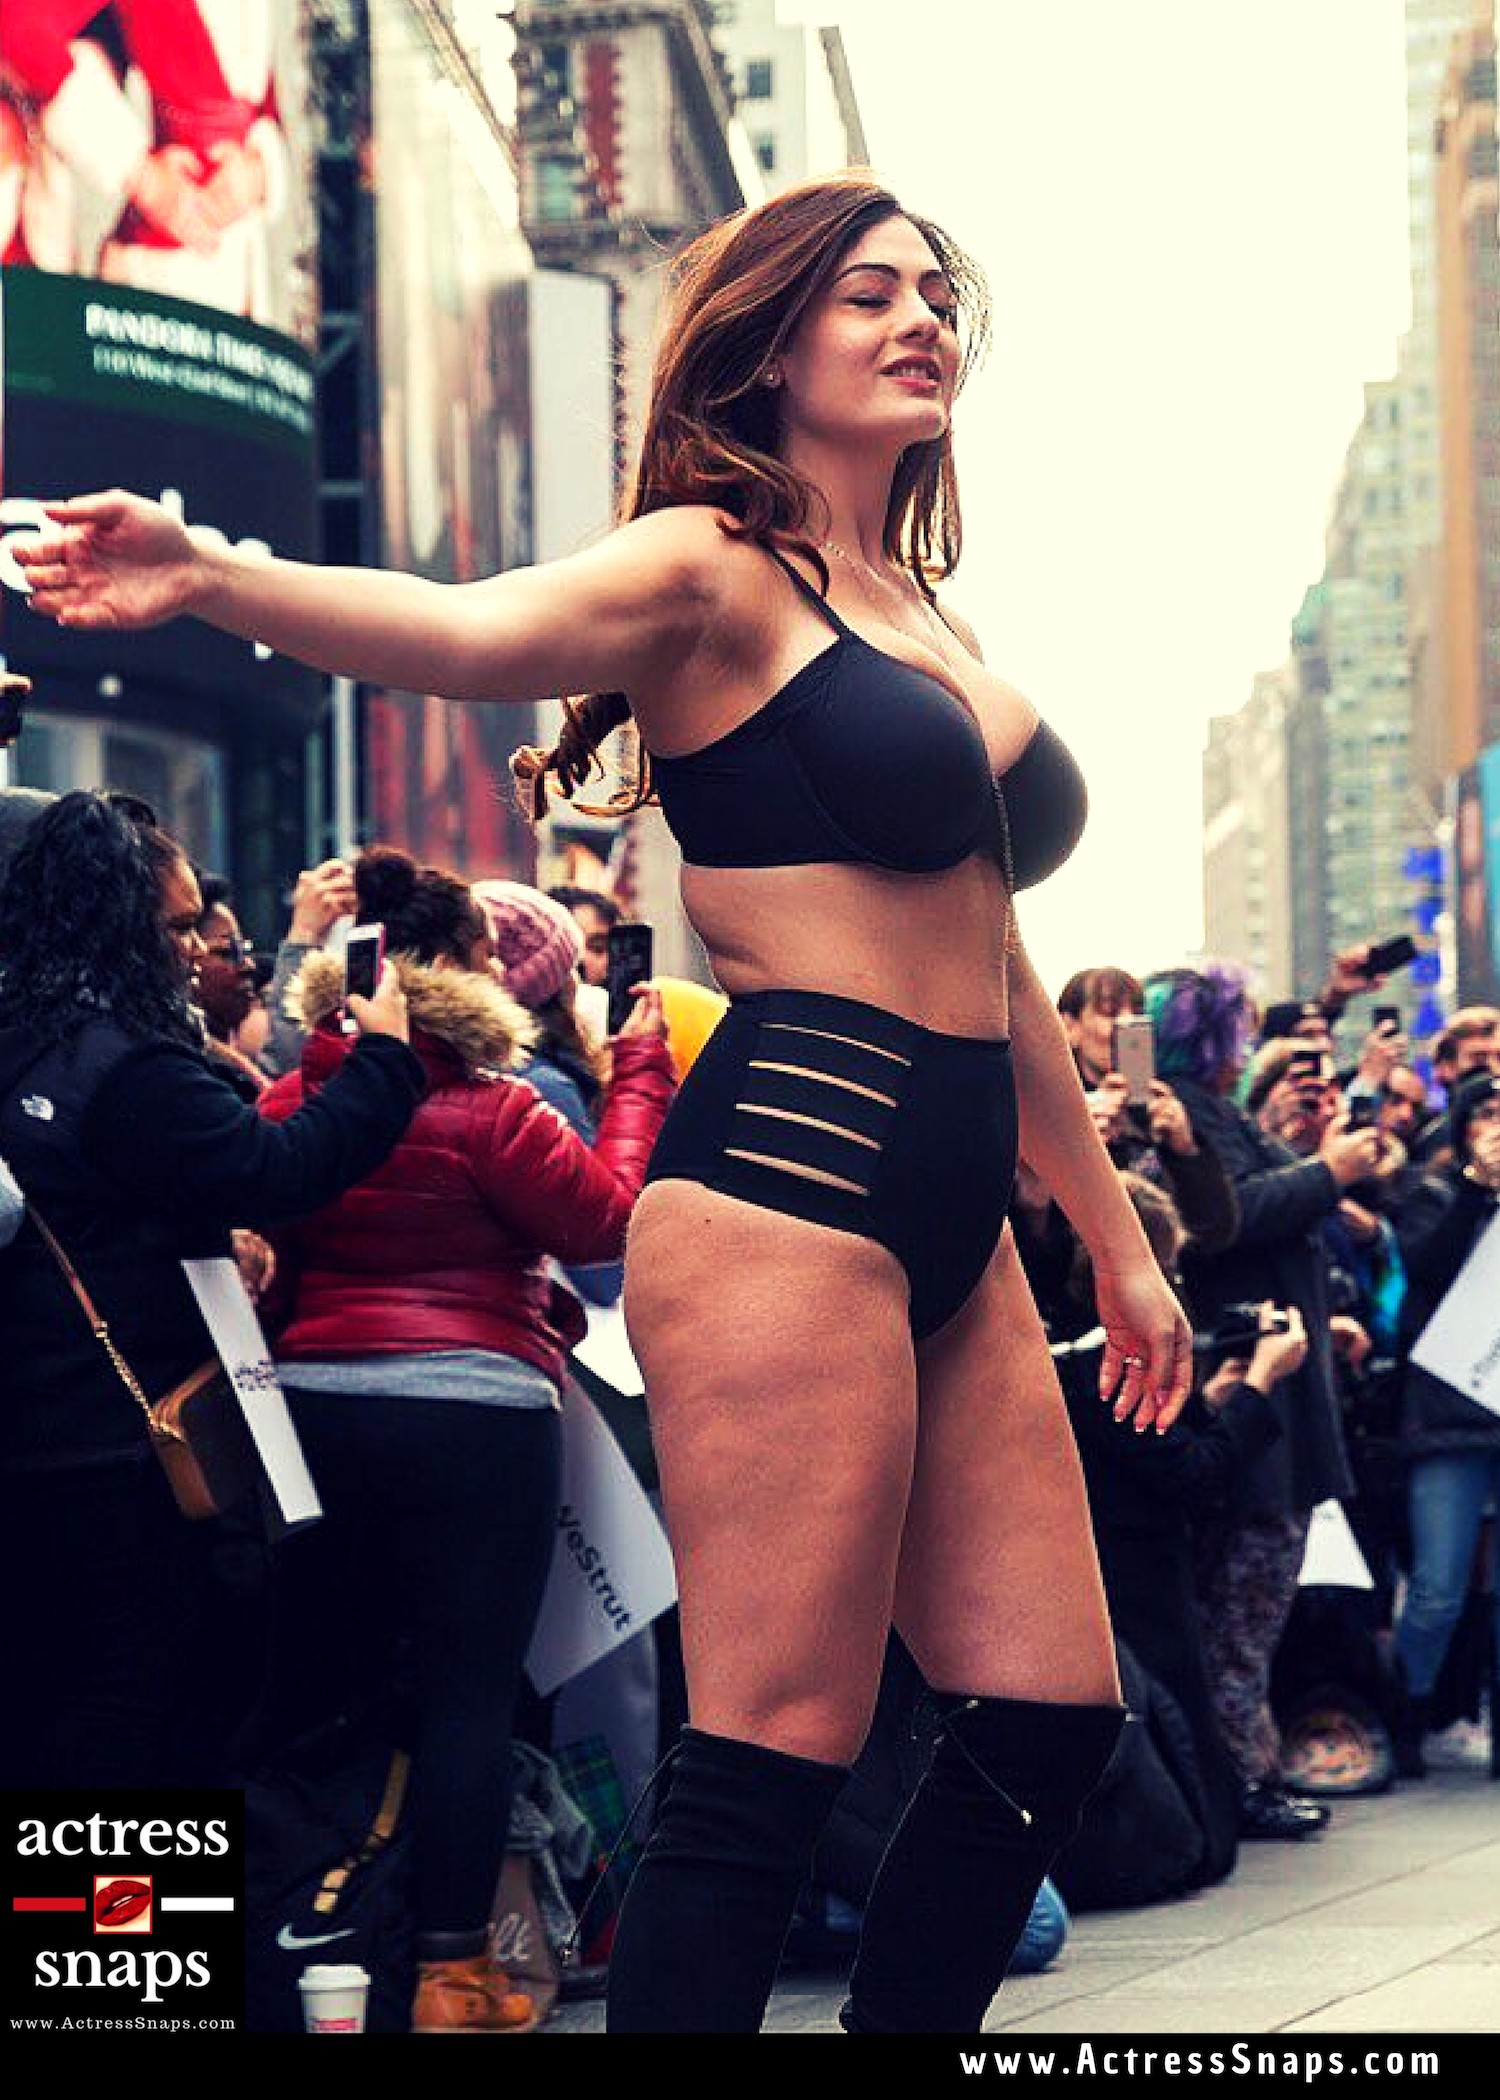 Paola Torrente - Catwalk at New York City - Sexy Actress Pictures | Hot Actress Pictures - ActressSnaps.com